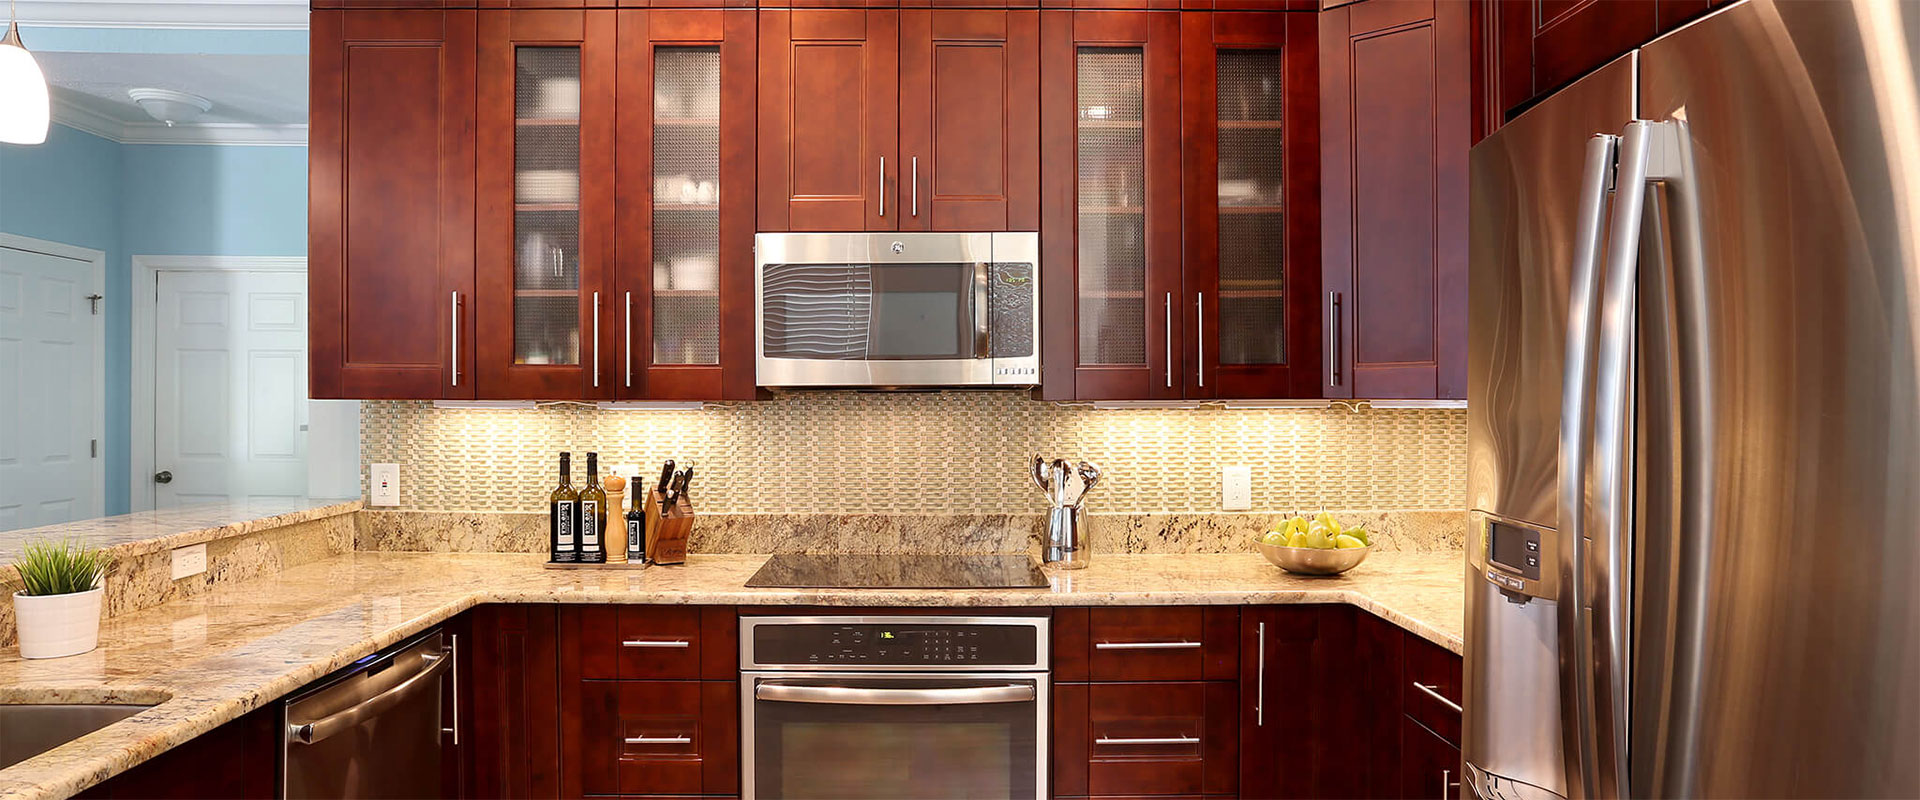 tampa kitchen cabinets | granite countertops | real wood